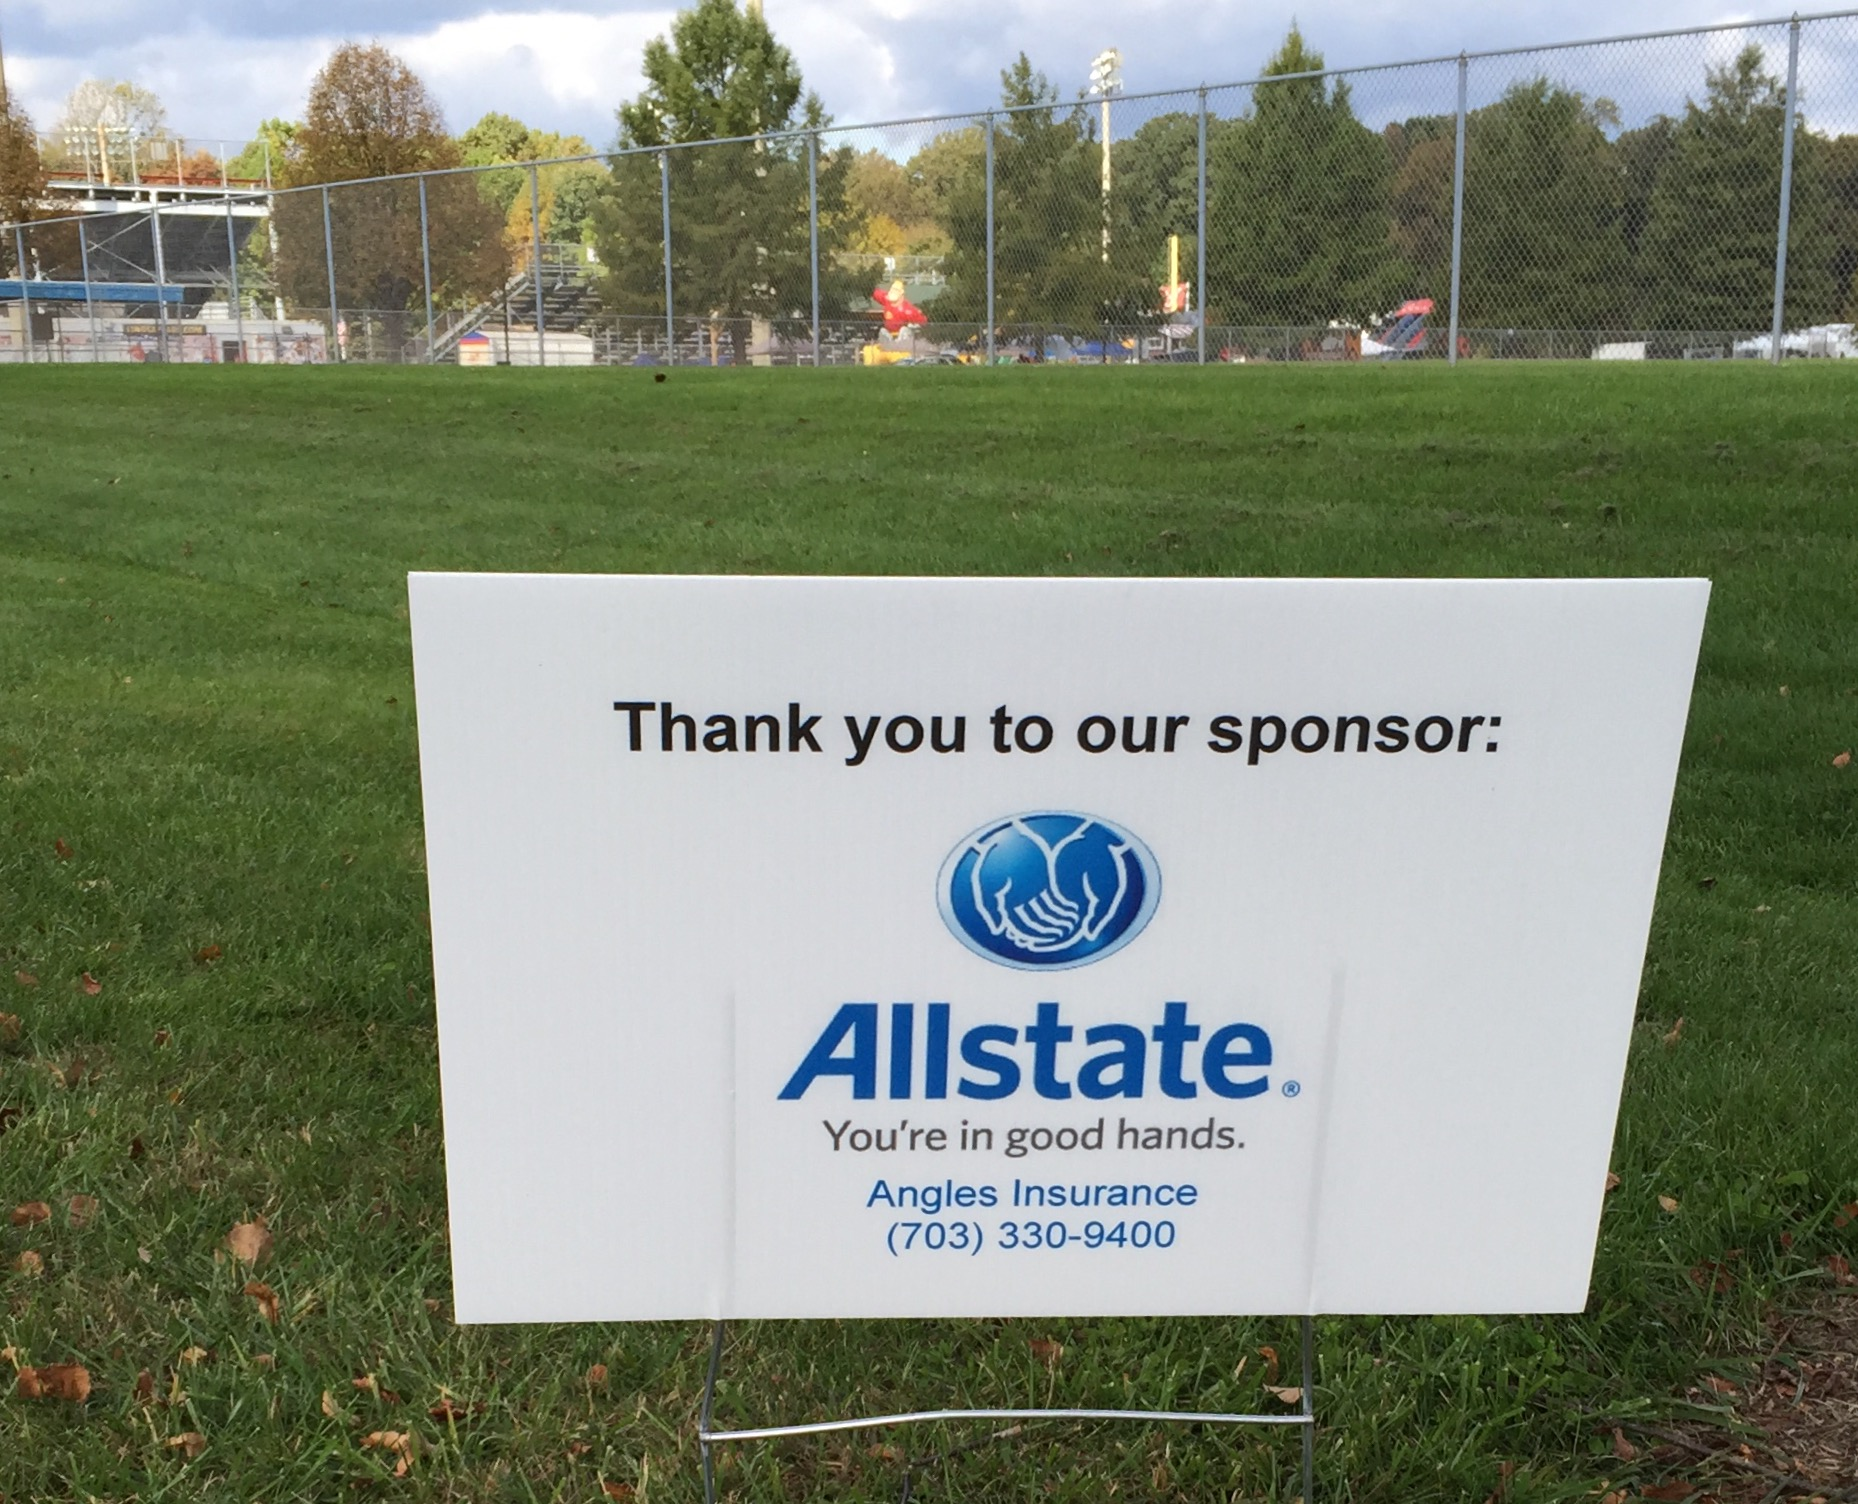 Allstate Insurance - Christine Angles, Manassas VA Sponsoring IWALK